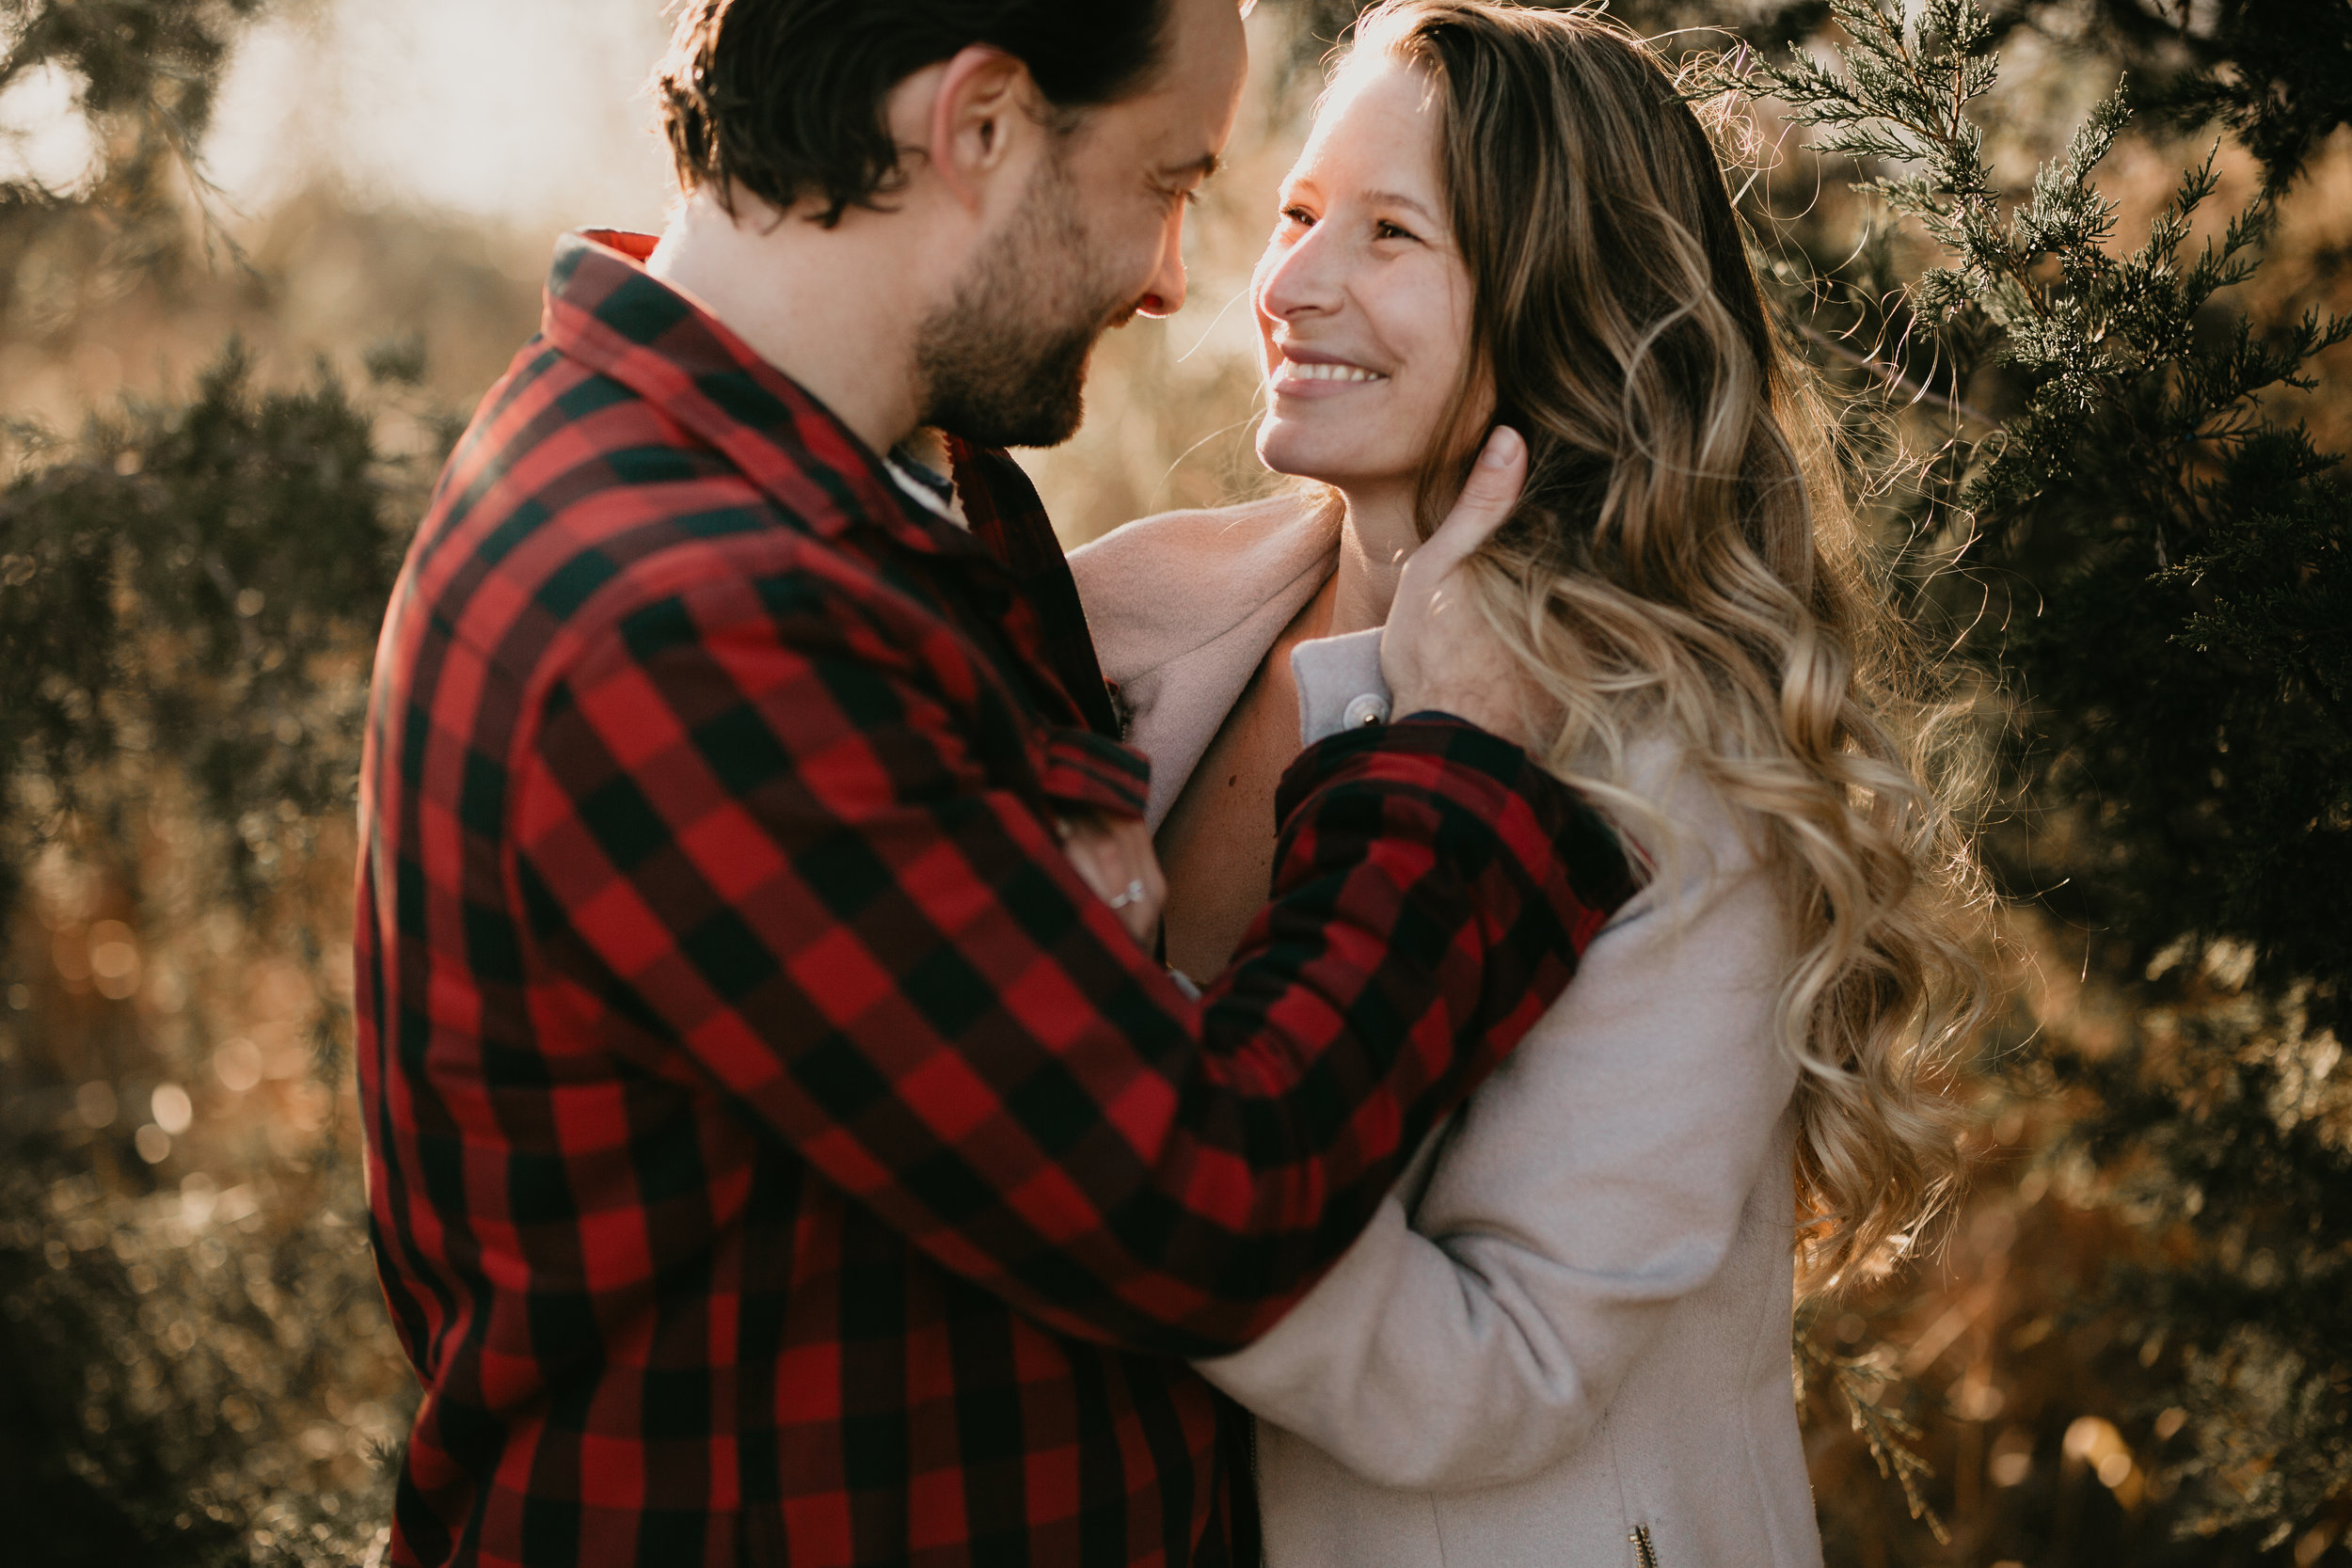 nicole-daacke-photography-white-cliffs-of-conoy-in-lancaster-pa-pennsylvania-adventure-session-adventure-elopement-photographer-engagement session-in-lancaster-pa-photographer-golden-sunset-winter-solstice-wedding-riverside-elopement-4805.jpg